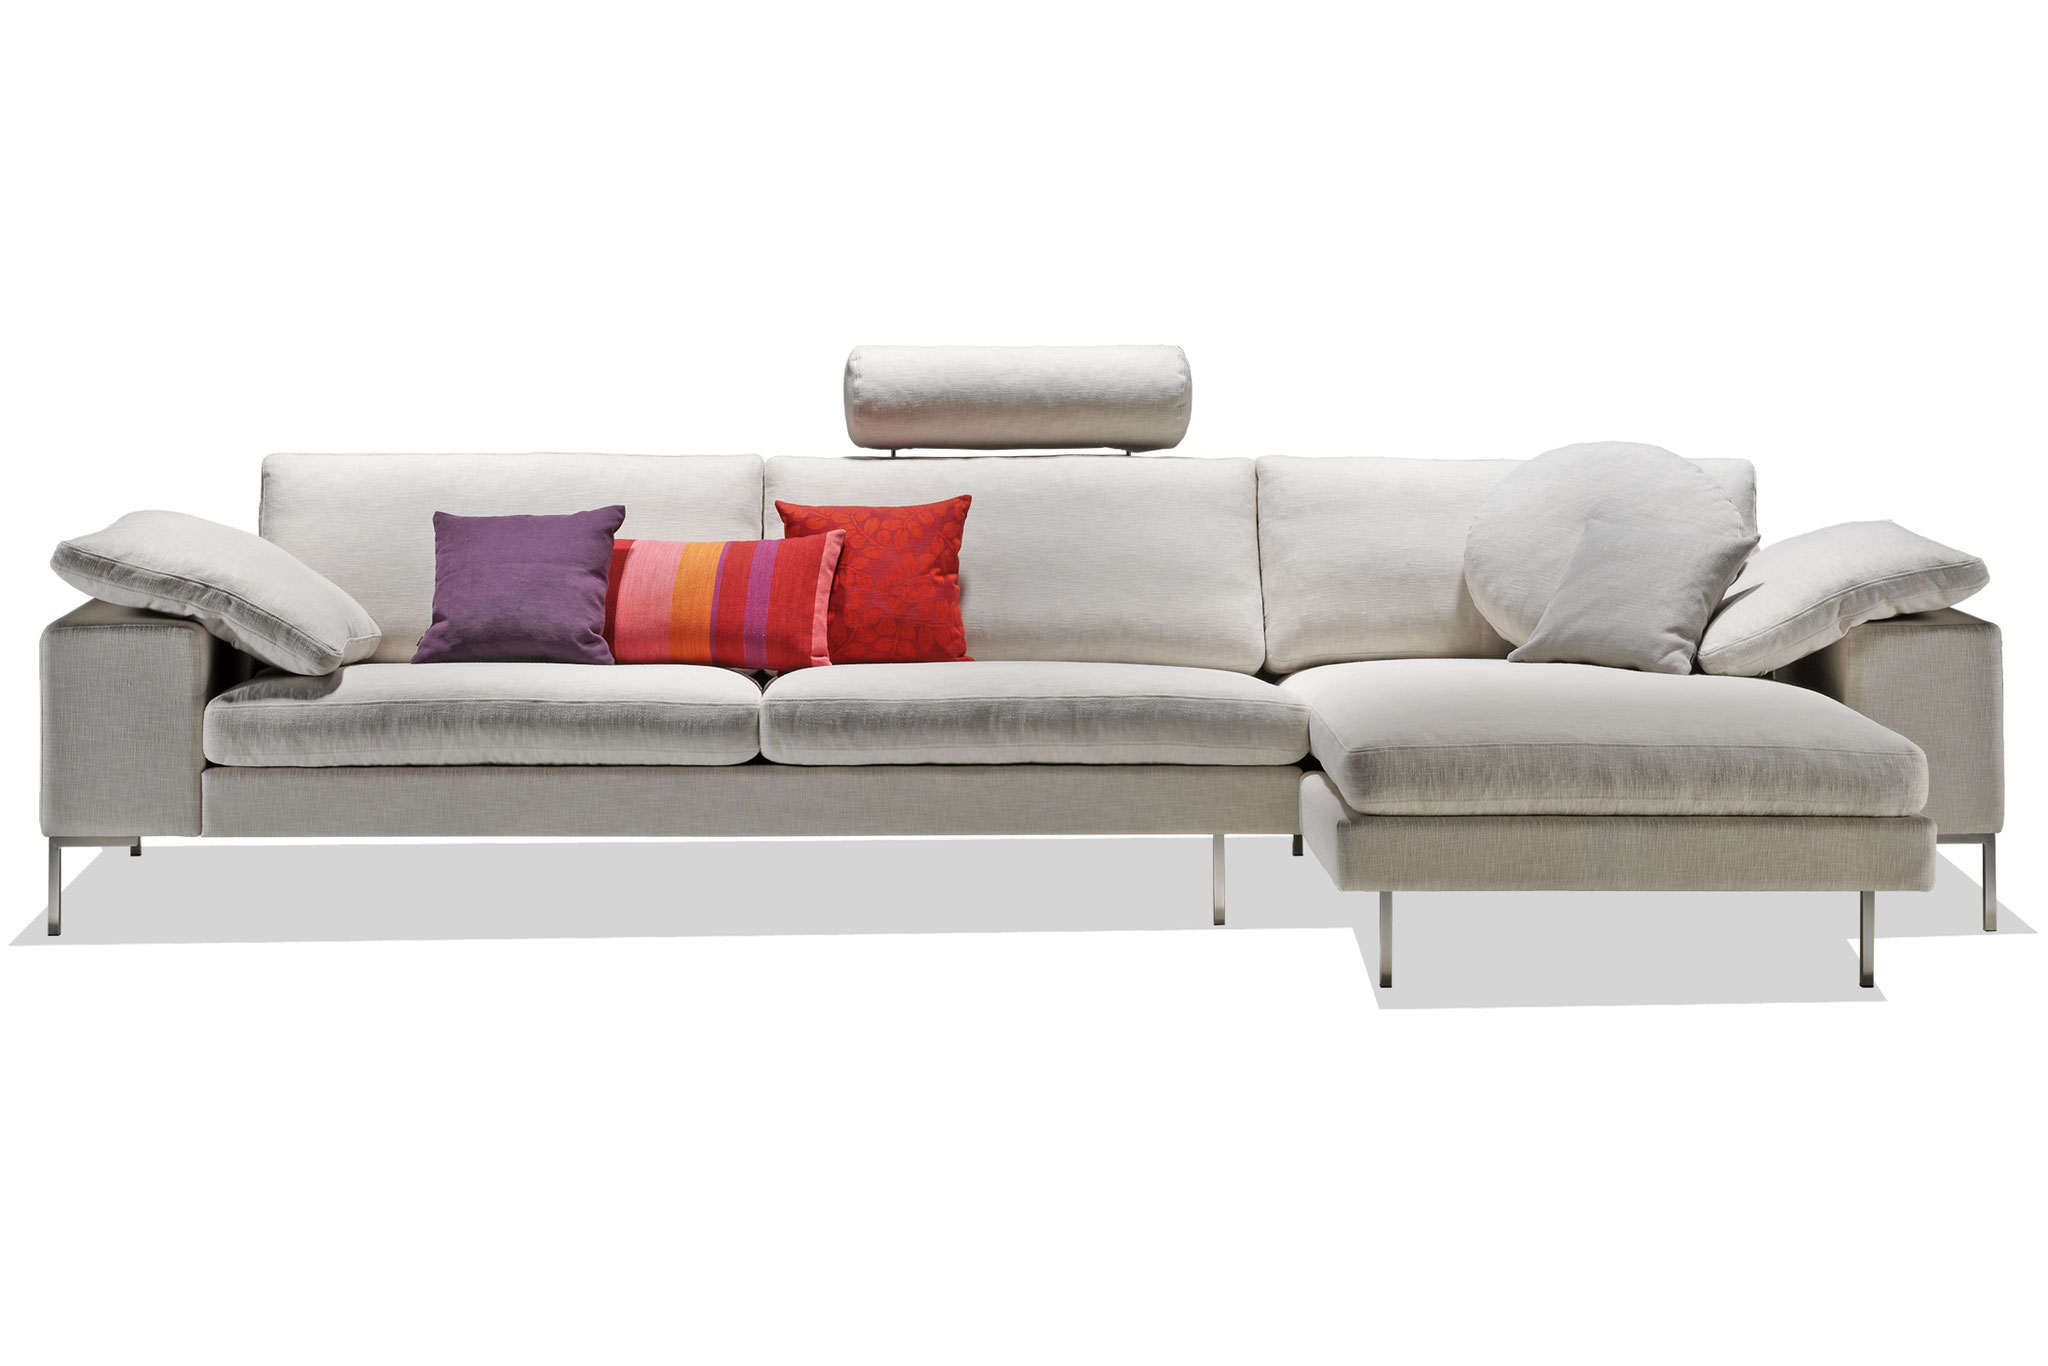 Chaise longue links